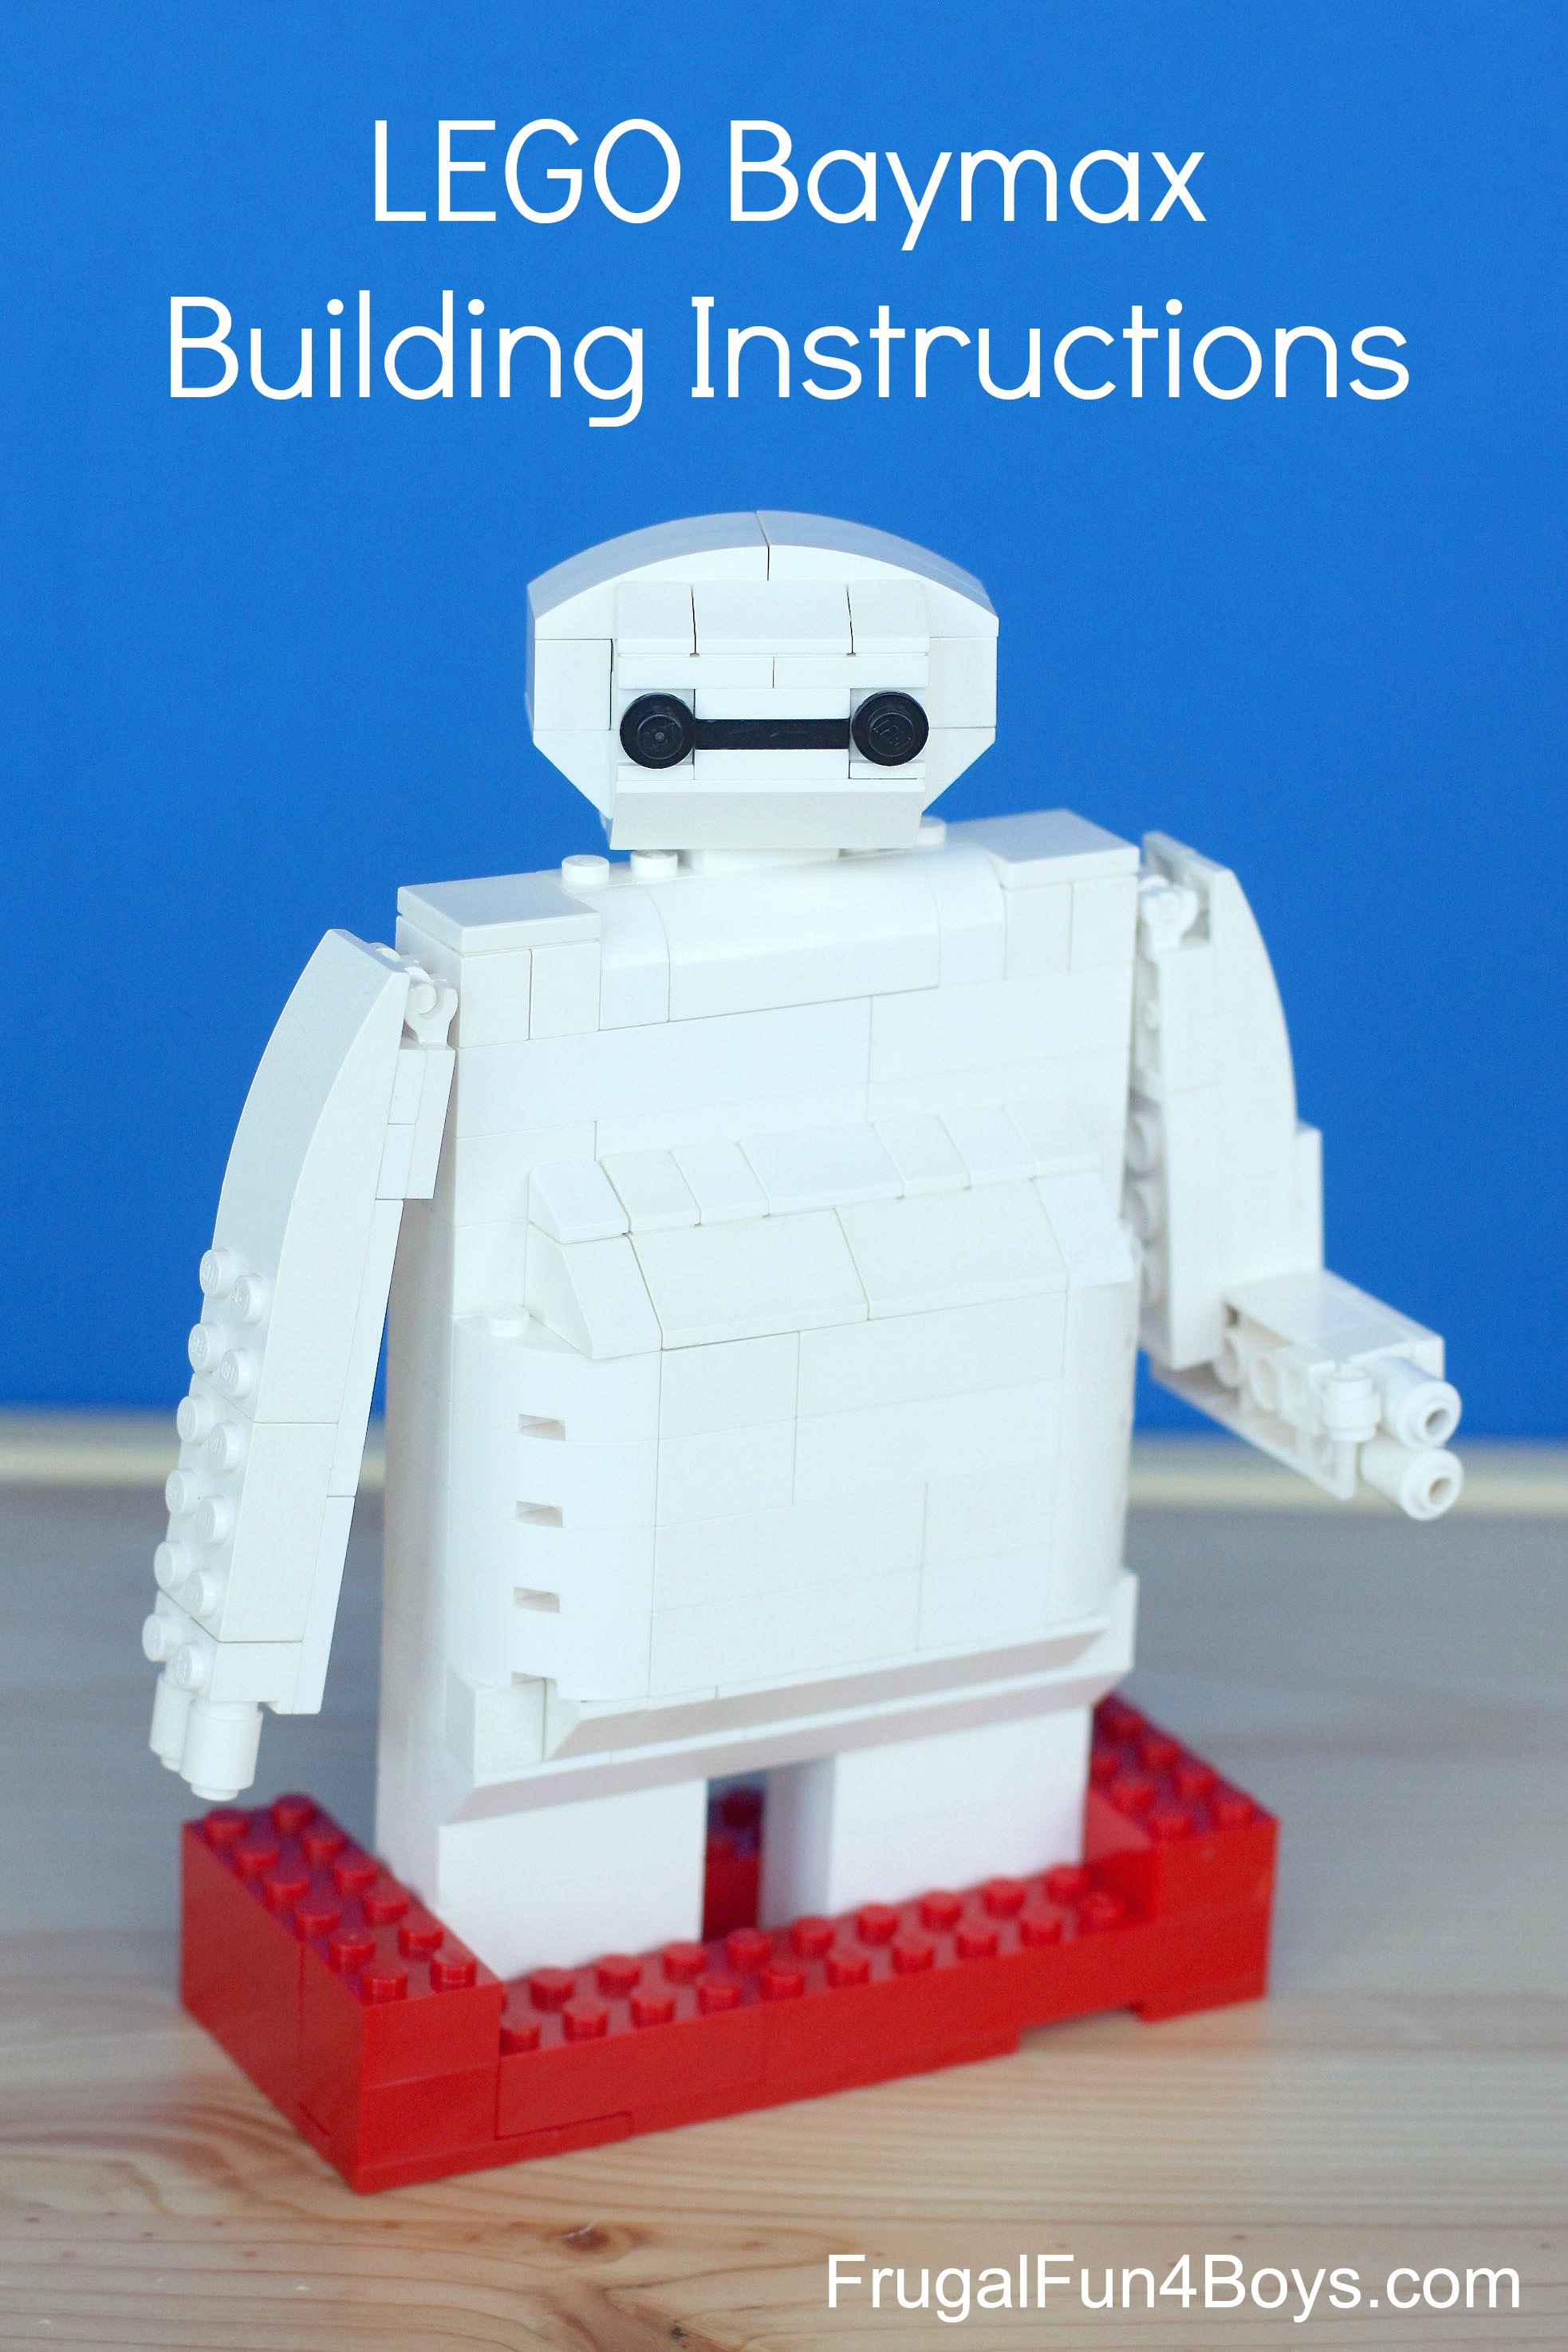 Lego Baymax Building Instructions Frugal Fun For Boys And Girls